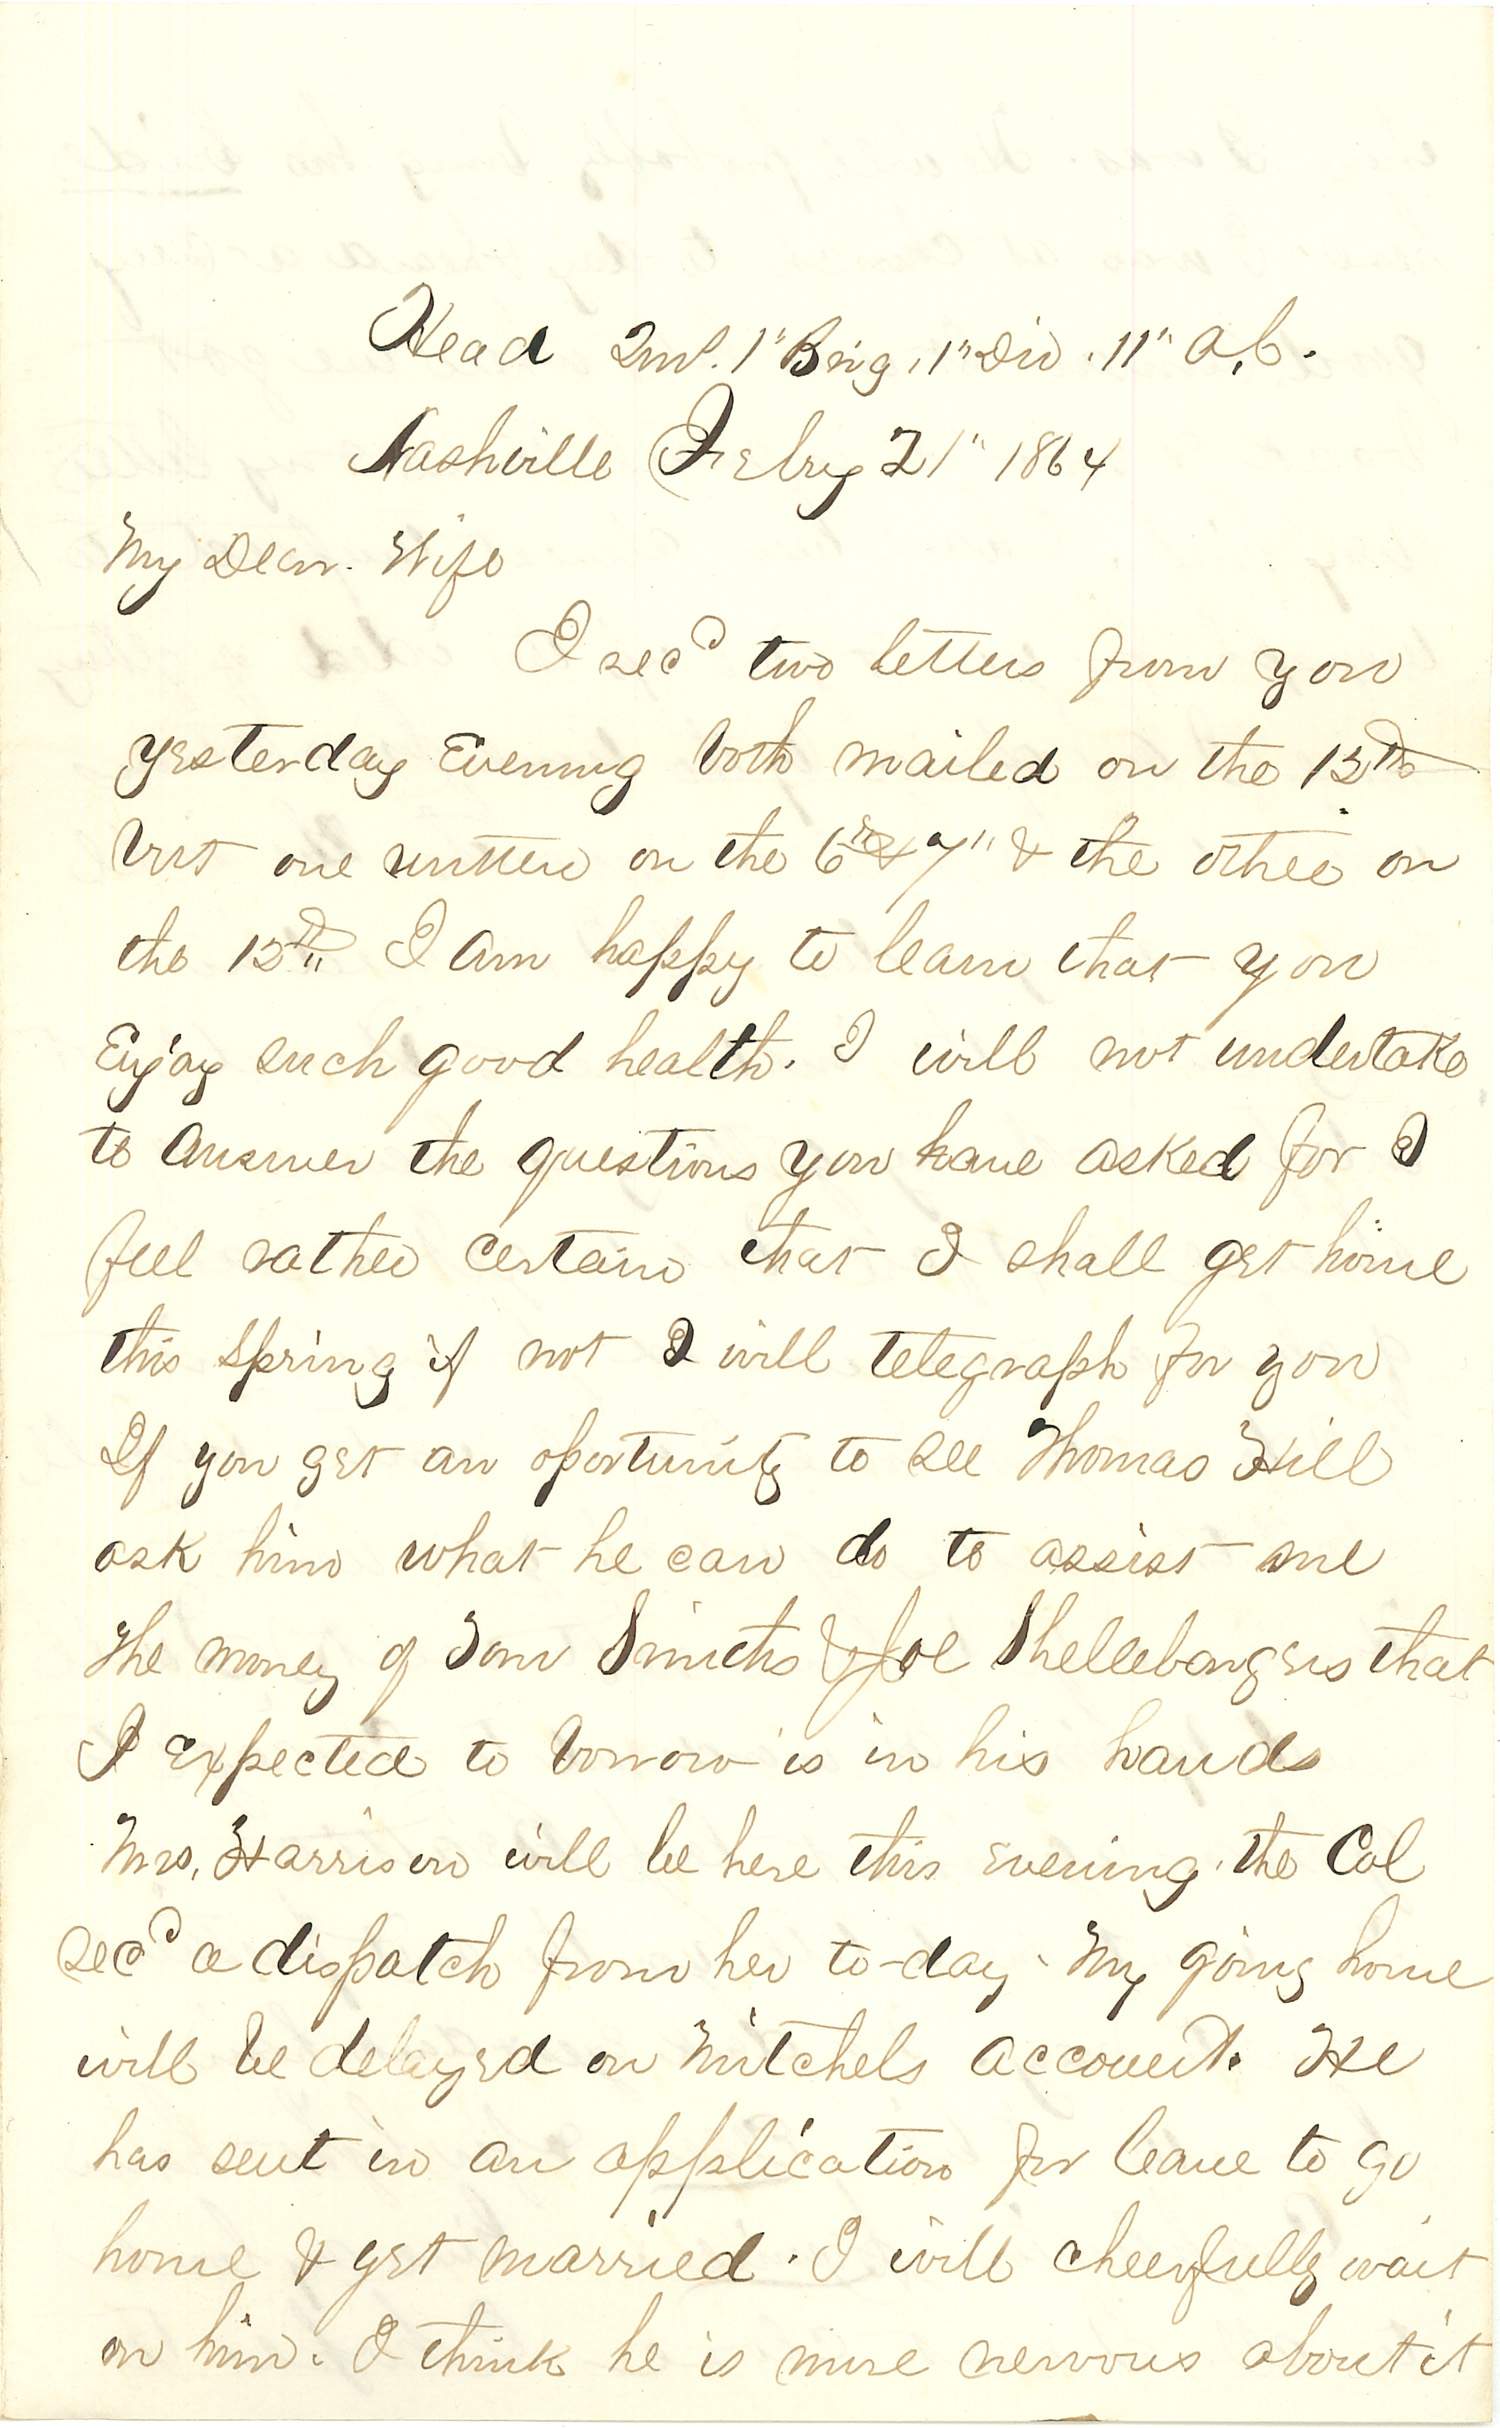 Joseph Culver Letter, February 21, 1864, Page 1